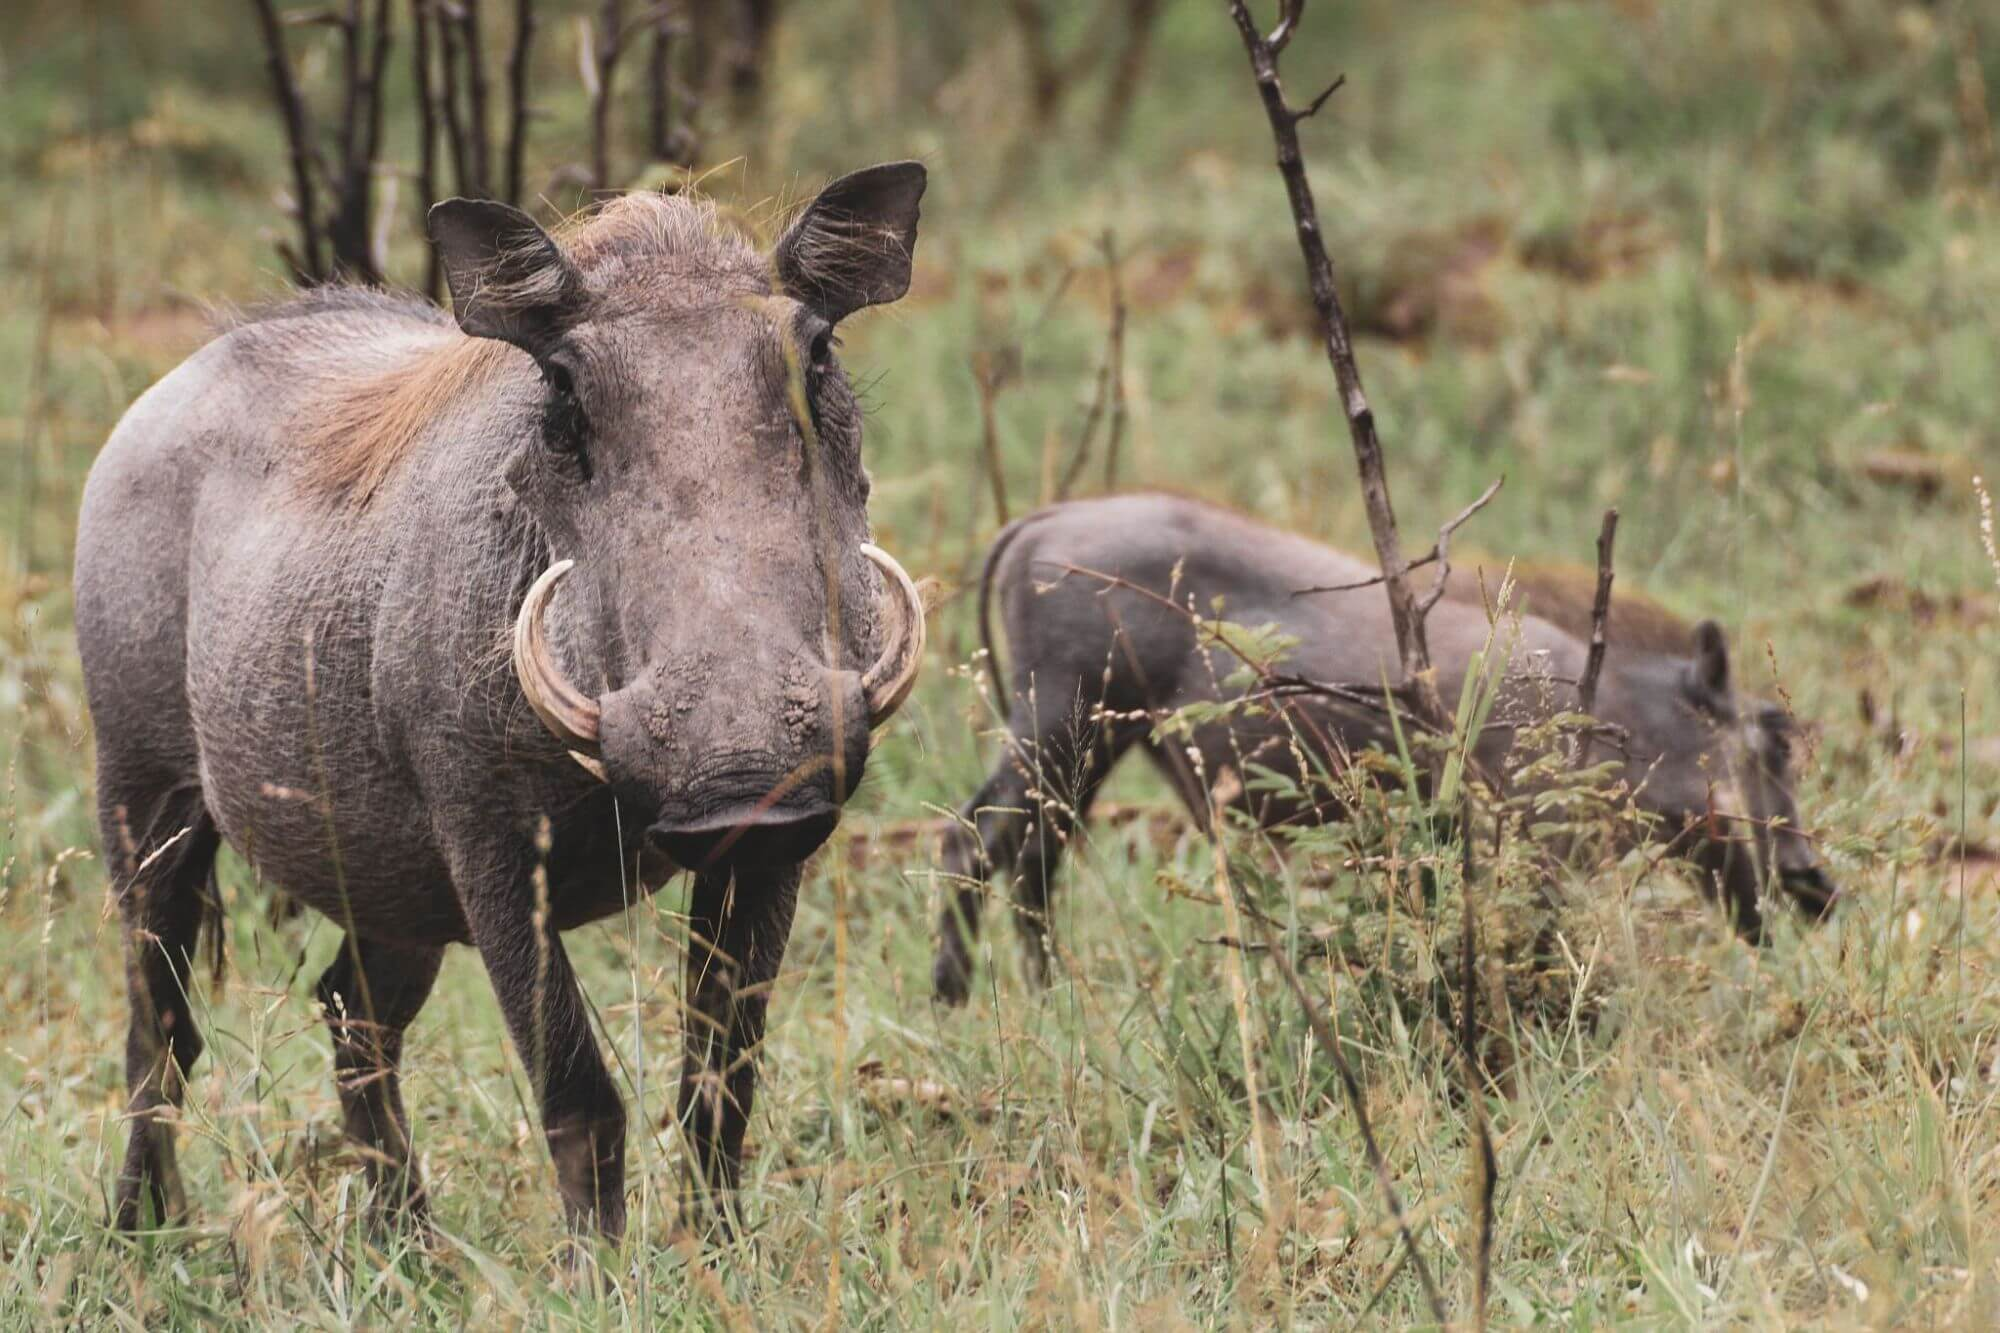 Warthogs in Queen Elizabeth National Park Uganda